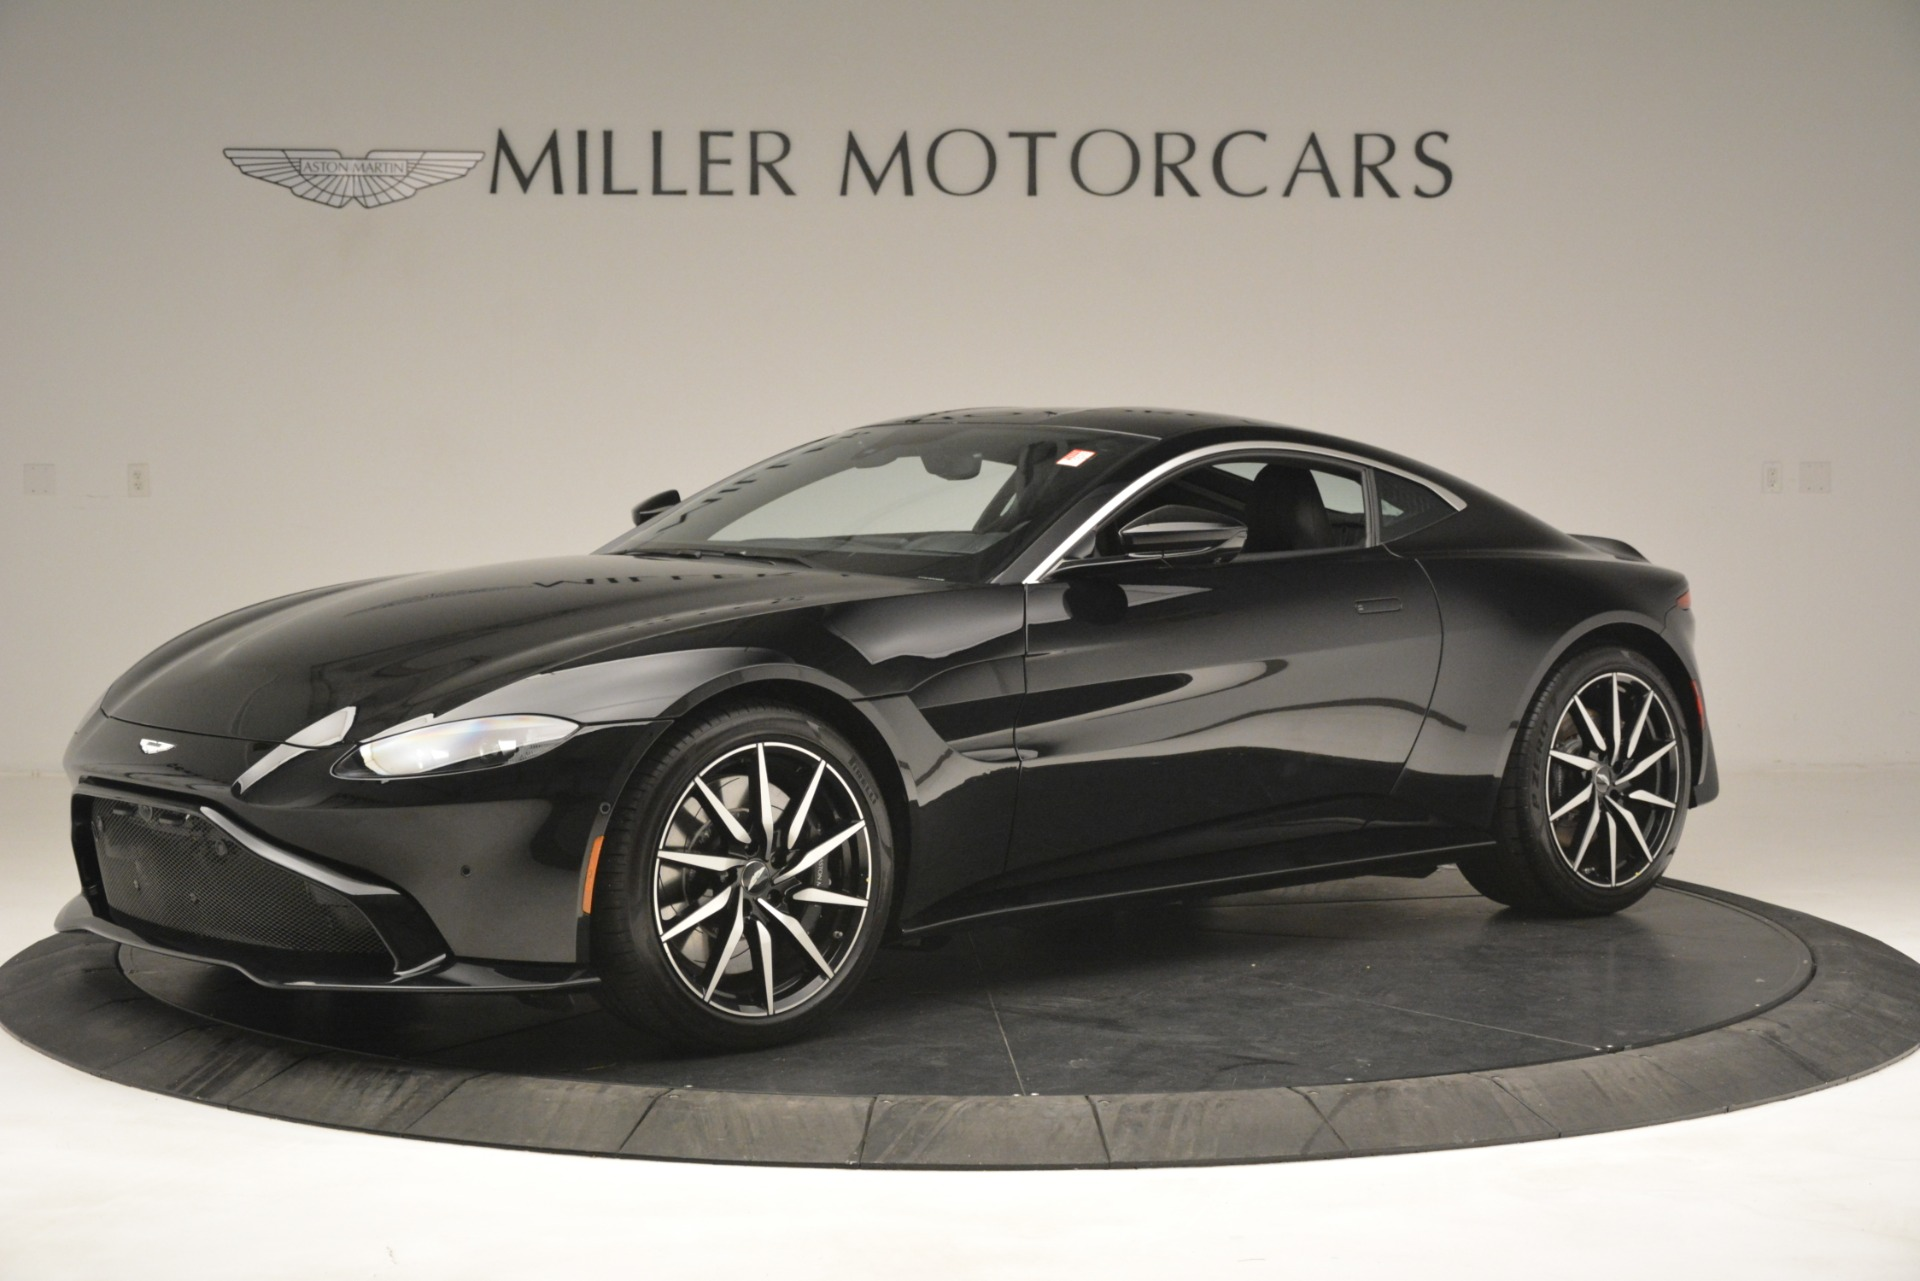 New 2019 Aston Martin Vantage Coupe for sale Sold at Bugatti of Greenwich in Greenwich CT 06830 1